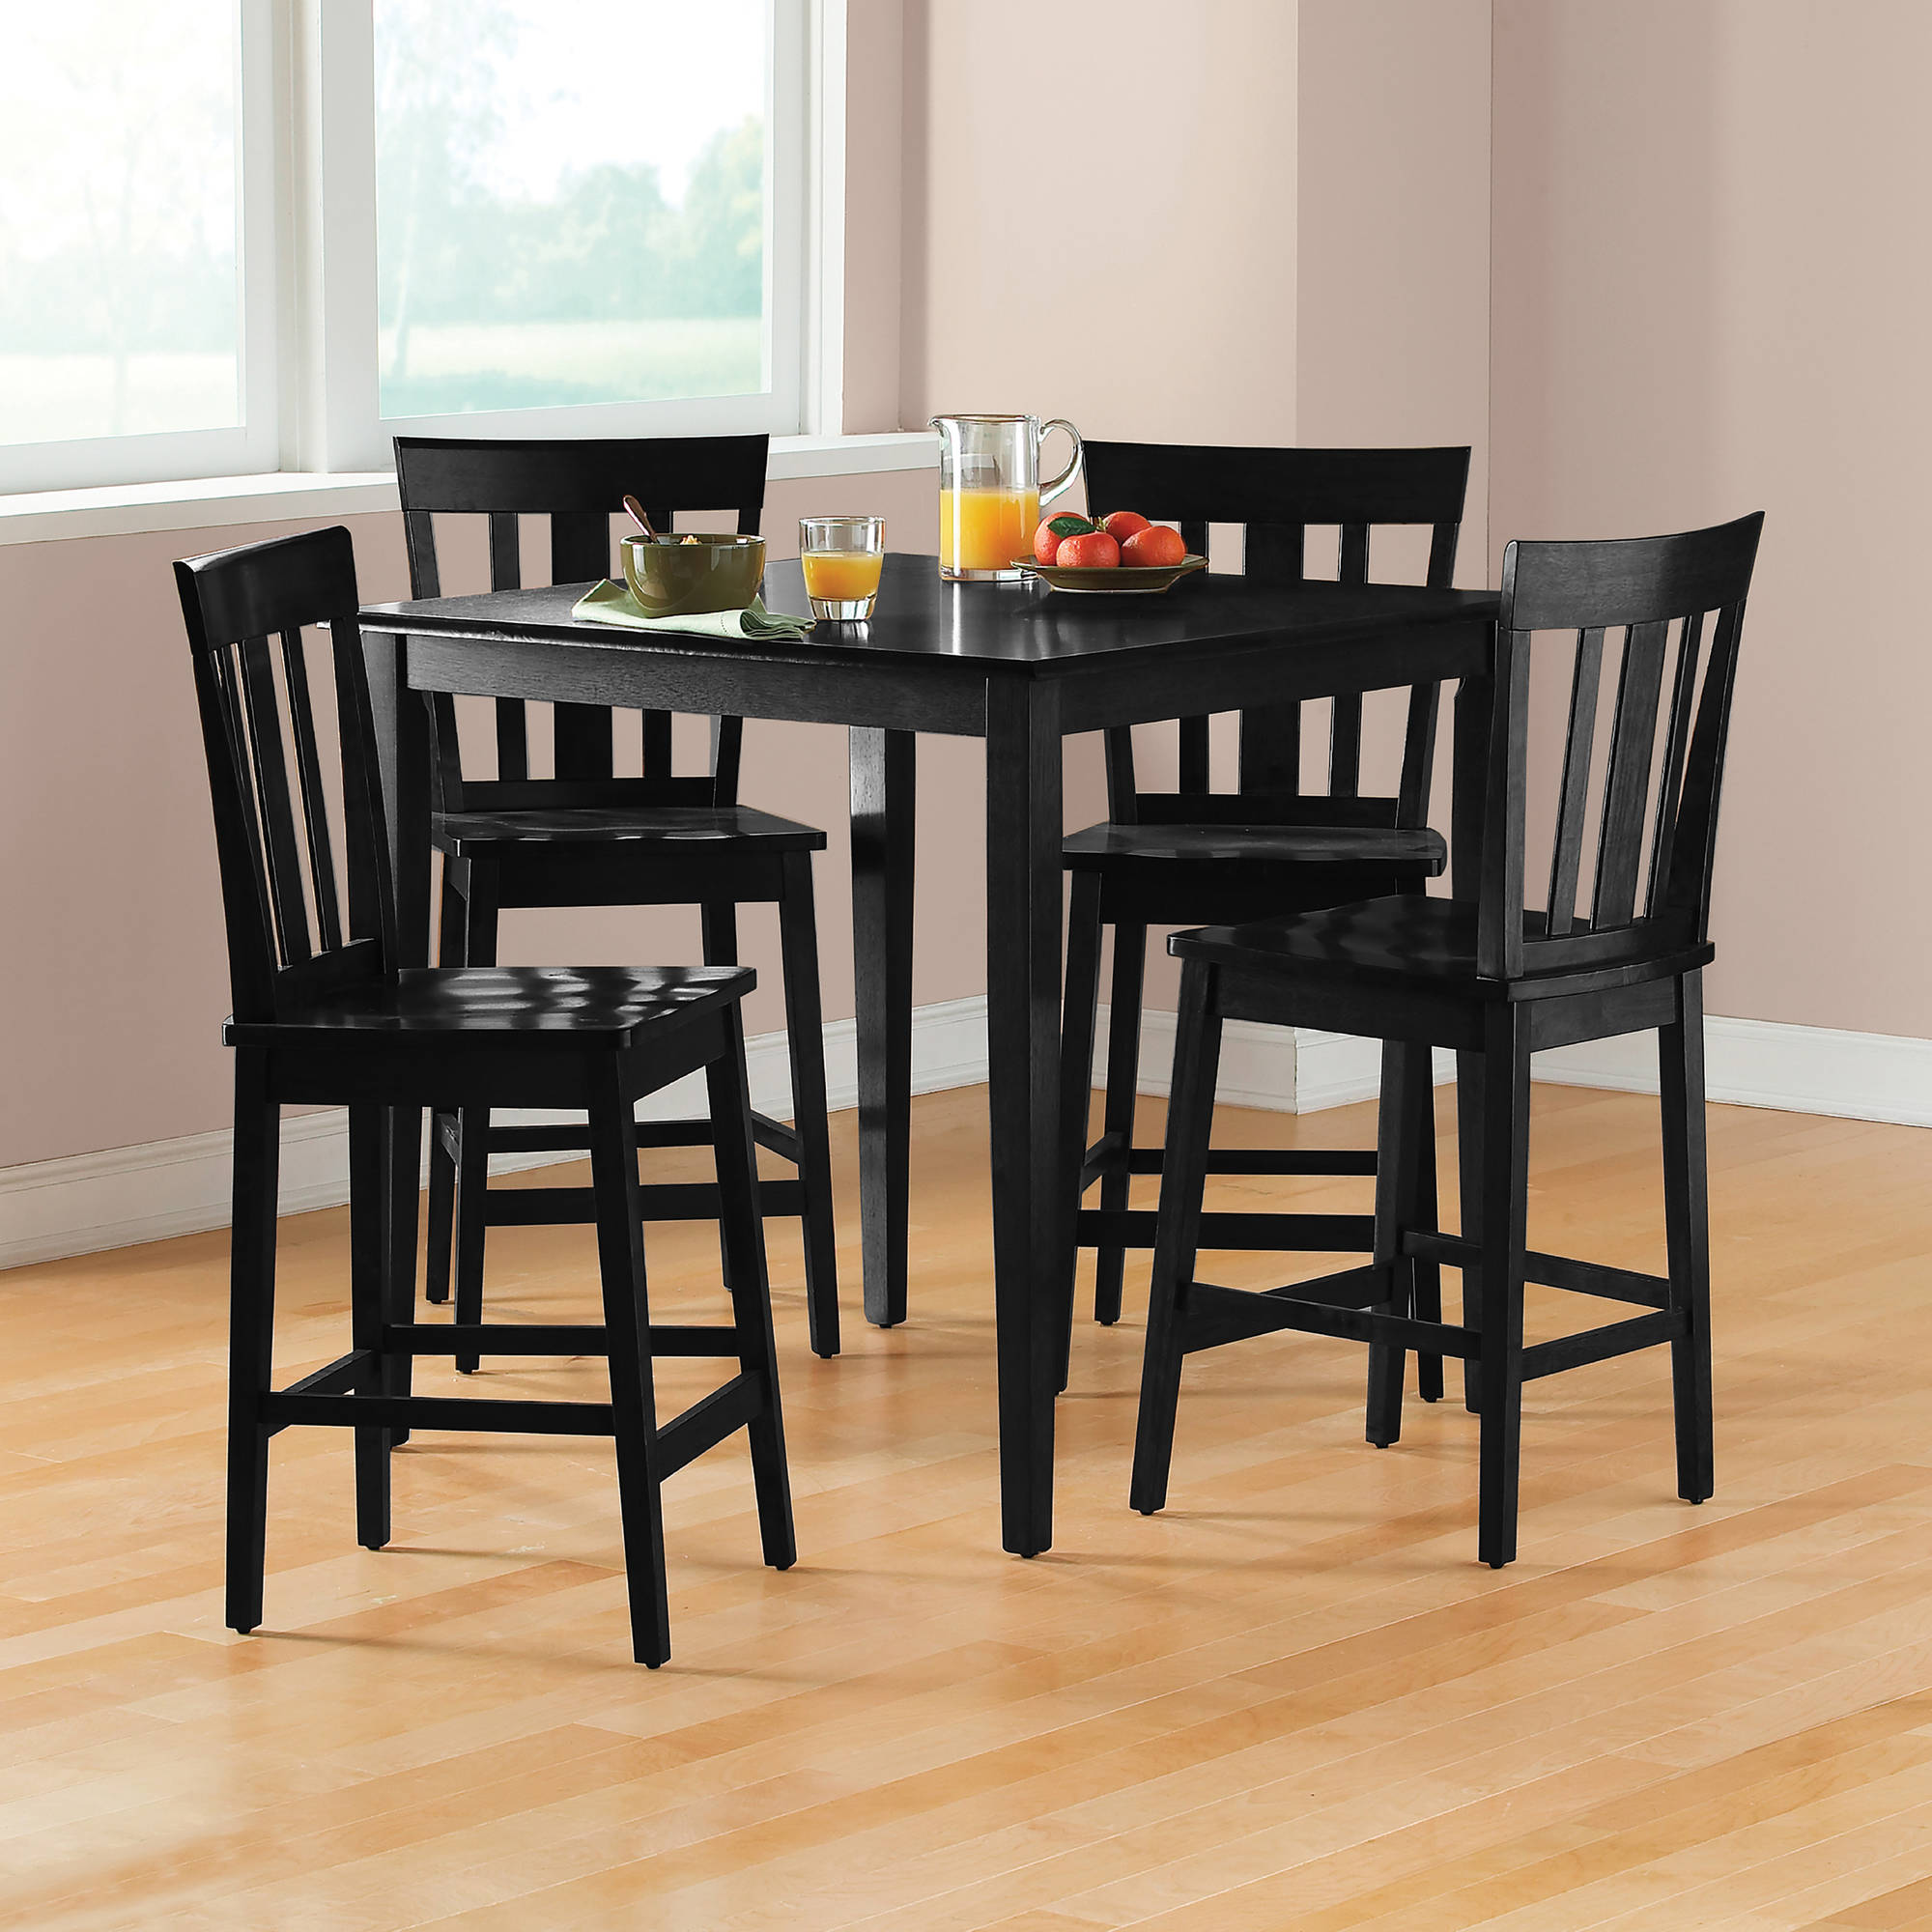 Mainstays 5 Piece Counter Height Dining Set  Black   Walmart.com Part 86